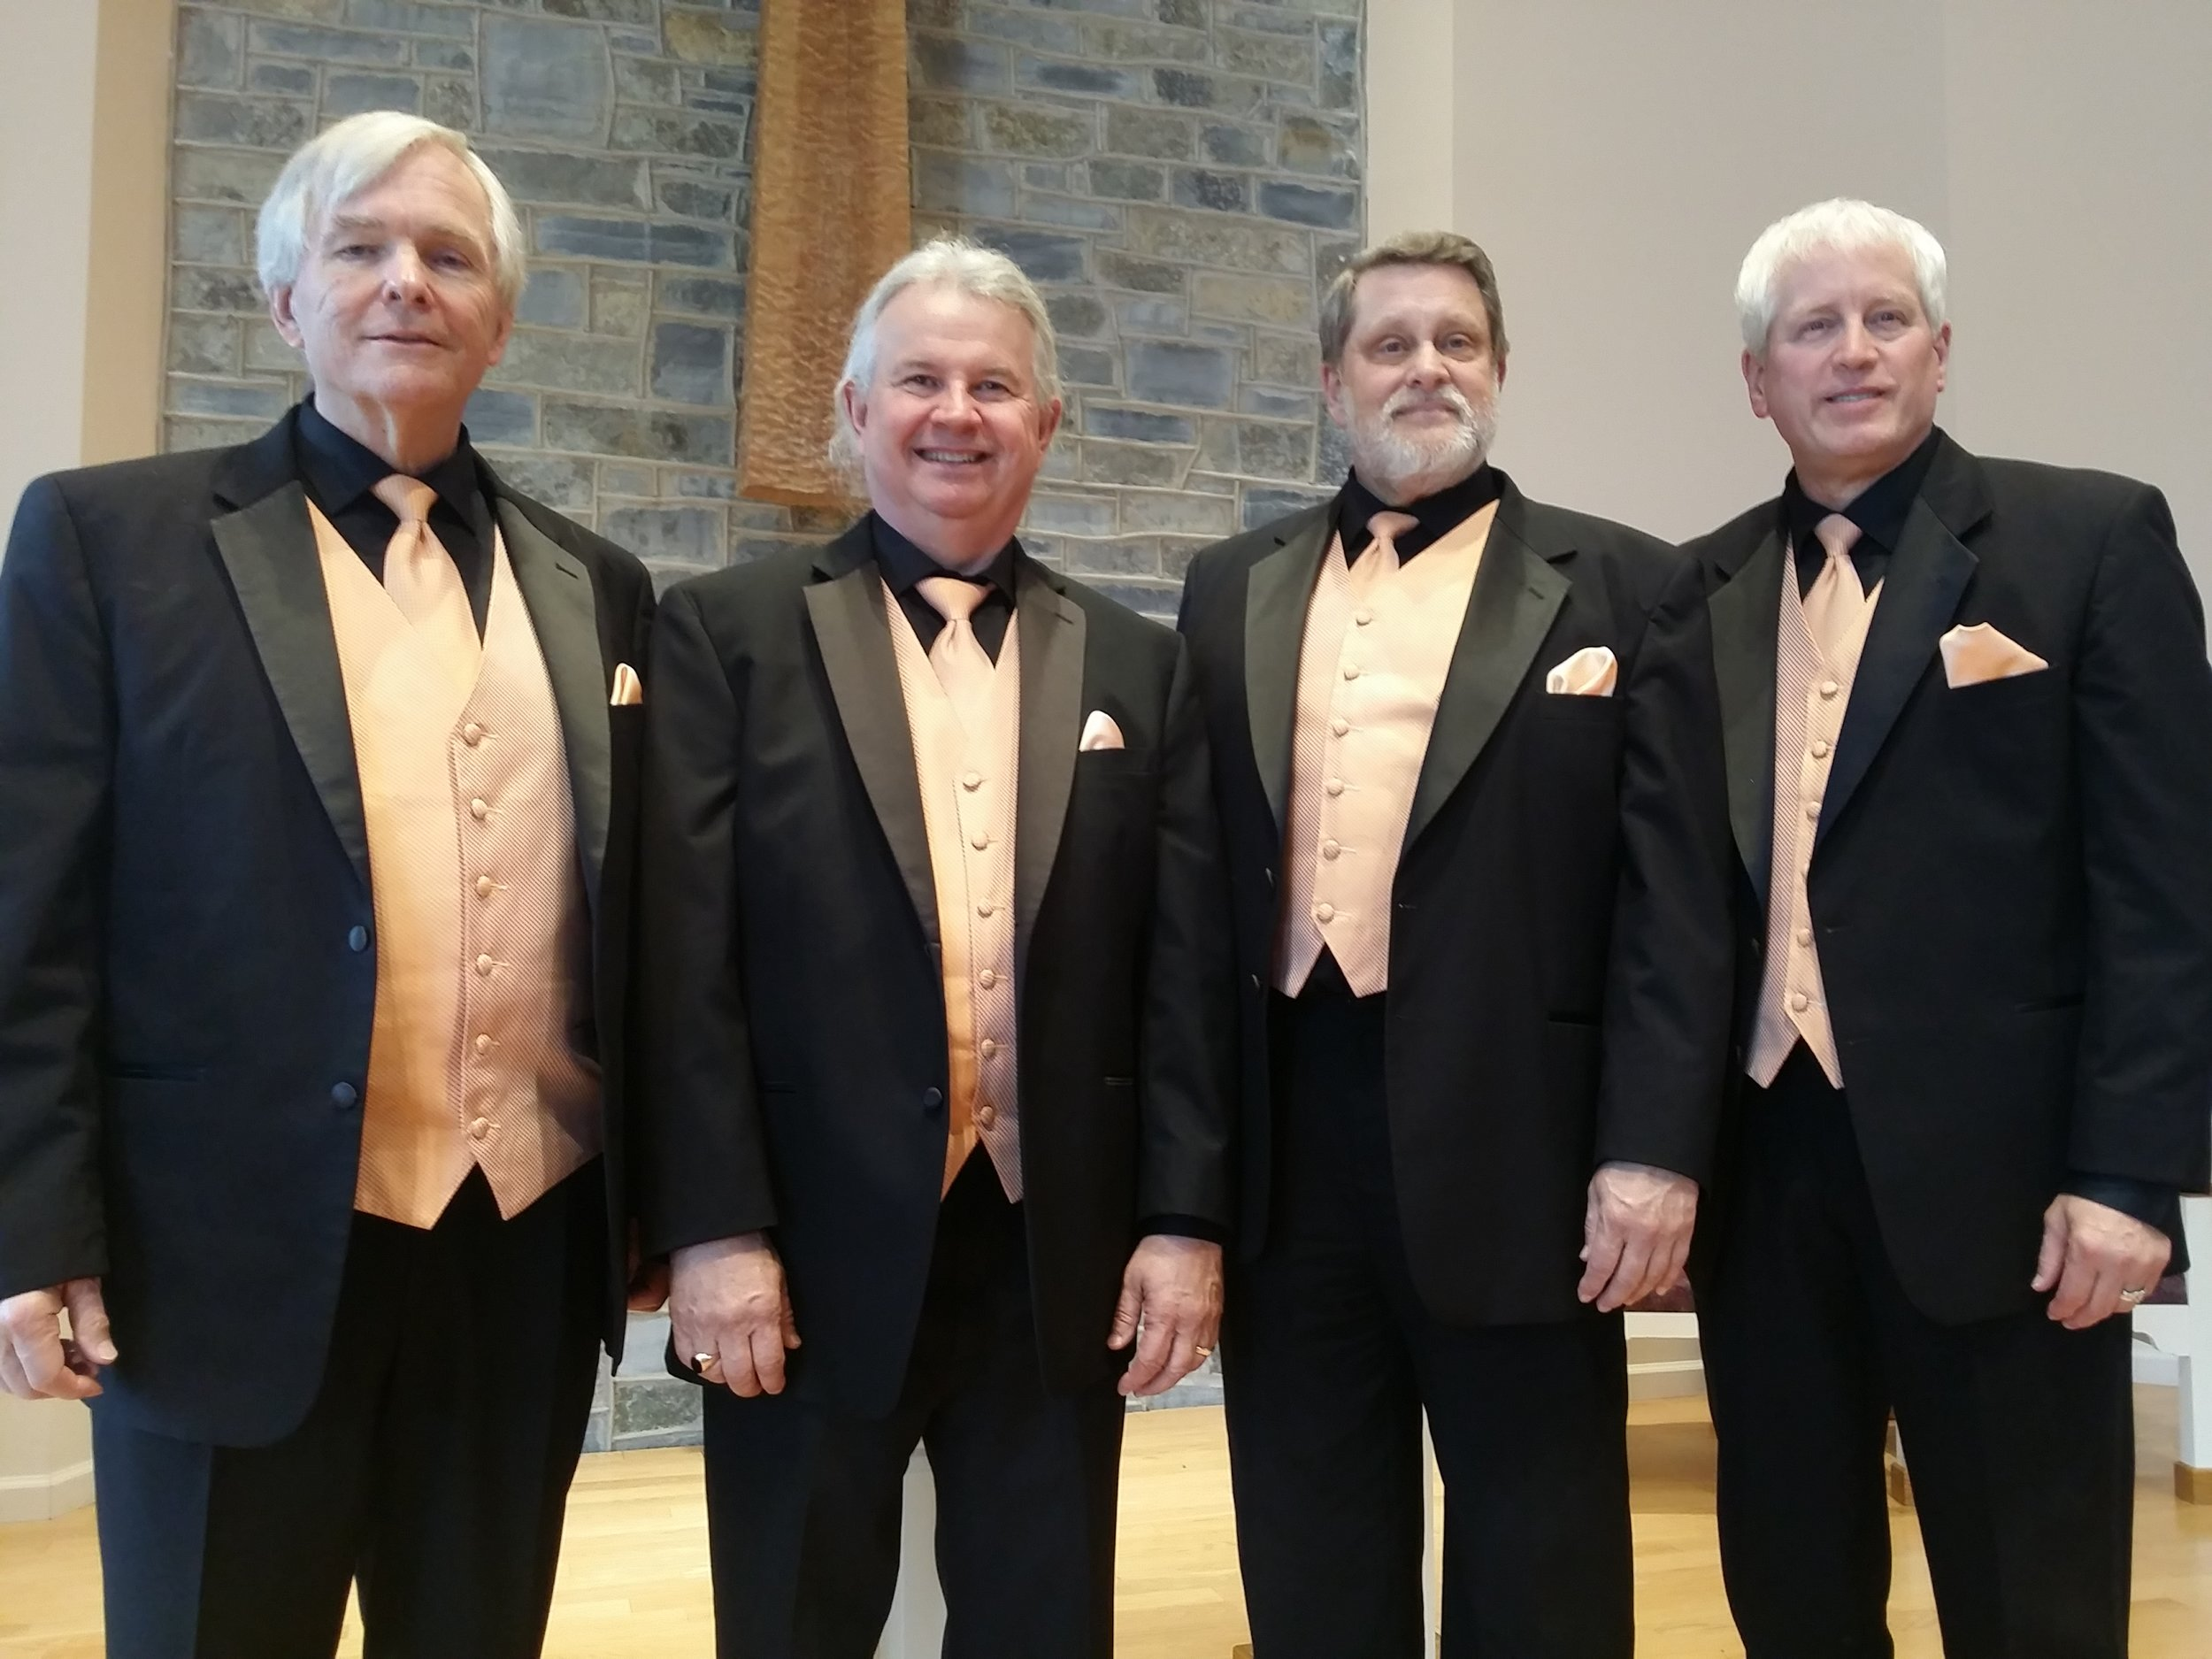 "Vintage Mix Quartet - Vintage Mix Quartet is a ""senior"" quartet in the Mid-Atlantic Division of the Barbershop Harmony Society.  We have been an organized and registered quartet since the summer of 2014.  We sing a mixture of old and new songs arranged in the ""Barbershop"" style of music.  The Barbershop style is generally four-part harmony a cappella singing.  We are honored to be a part of the Shenandoah Valley Sing Off for the first time!"